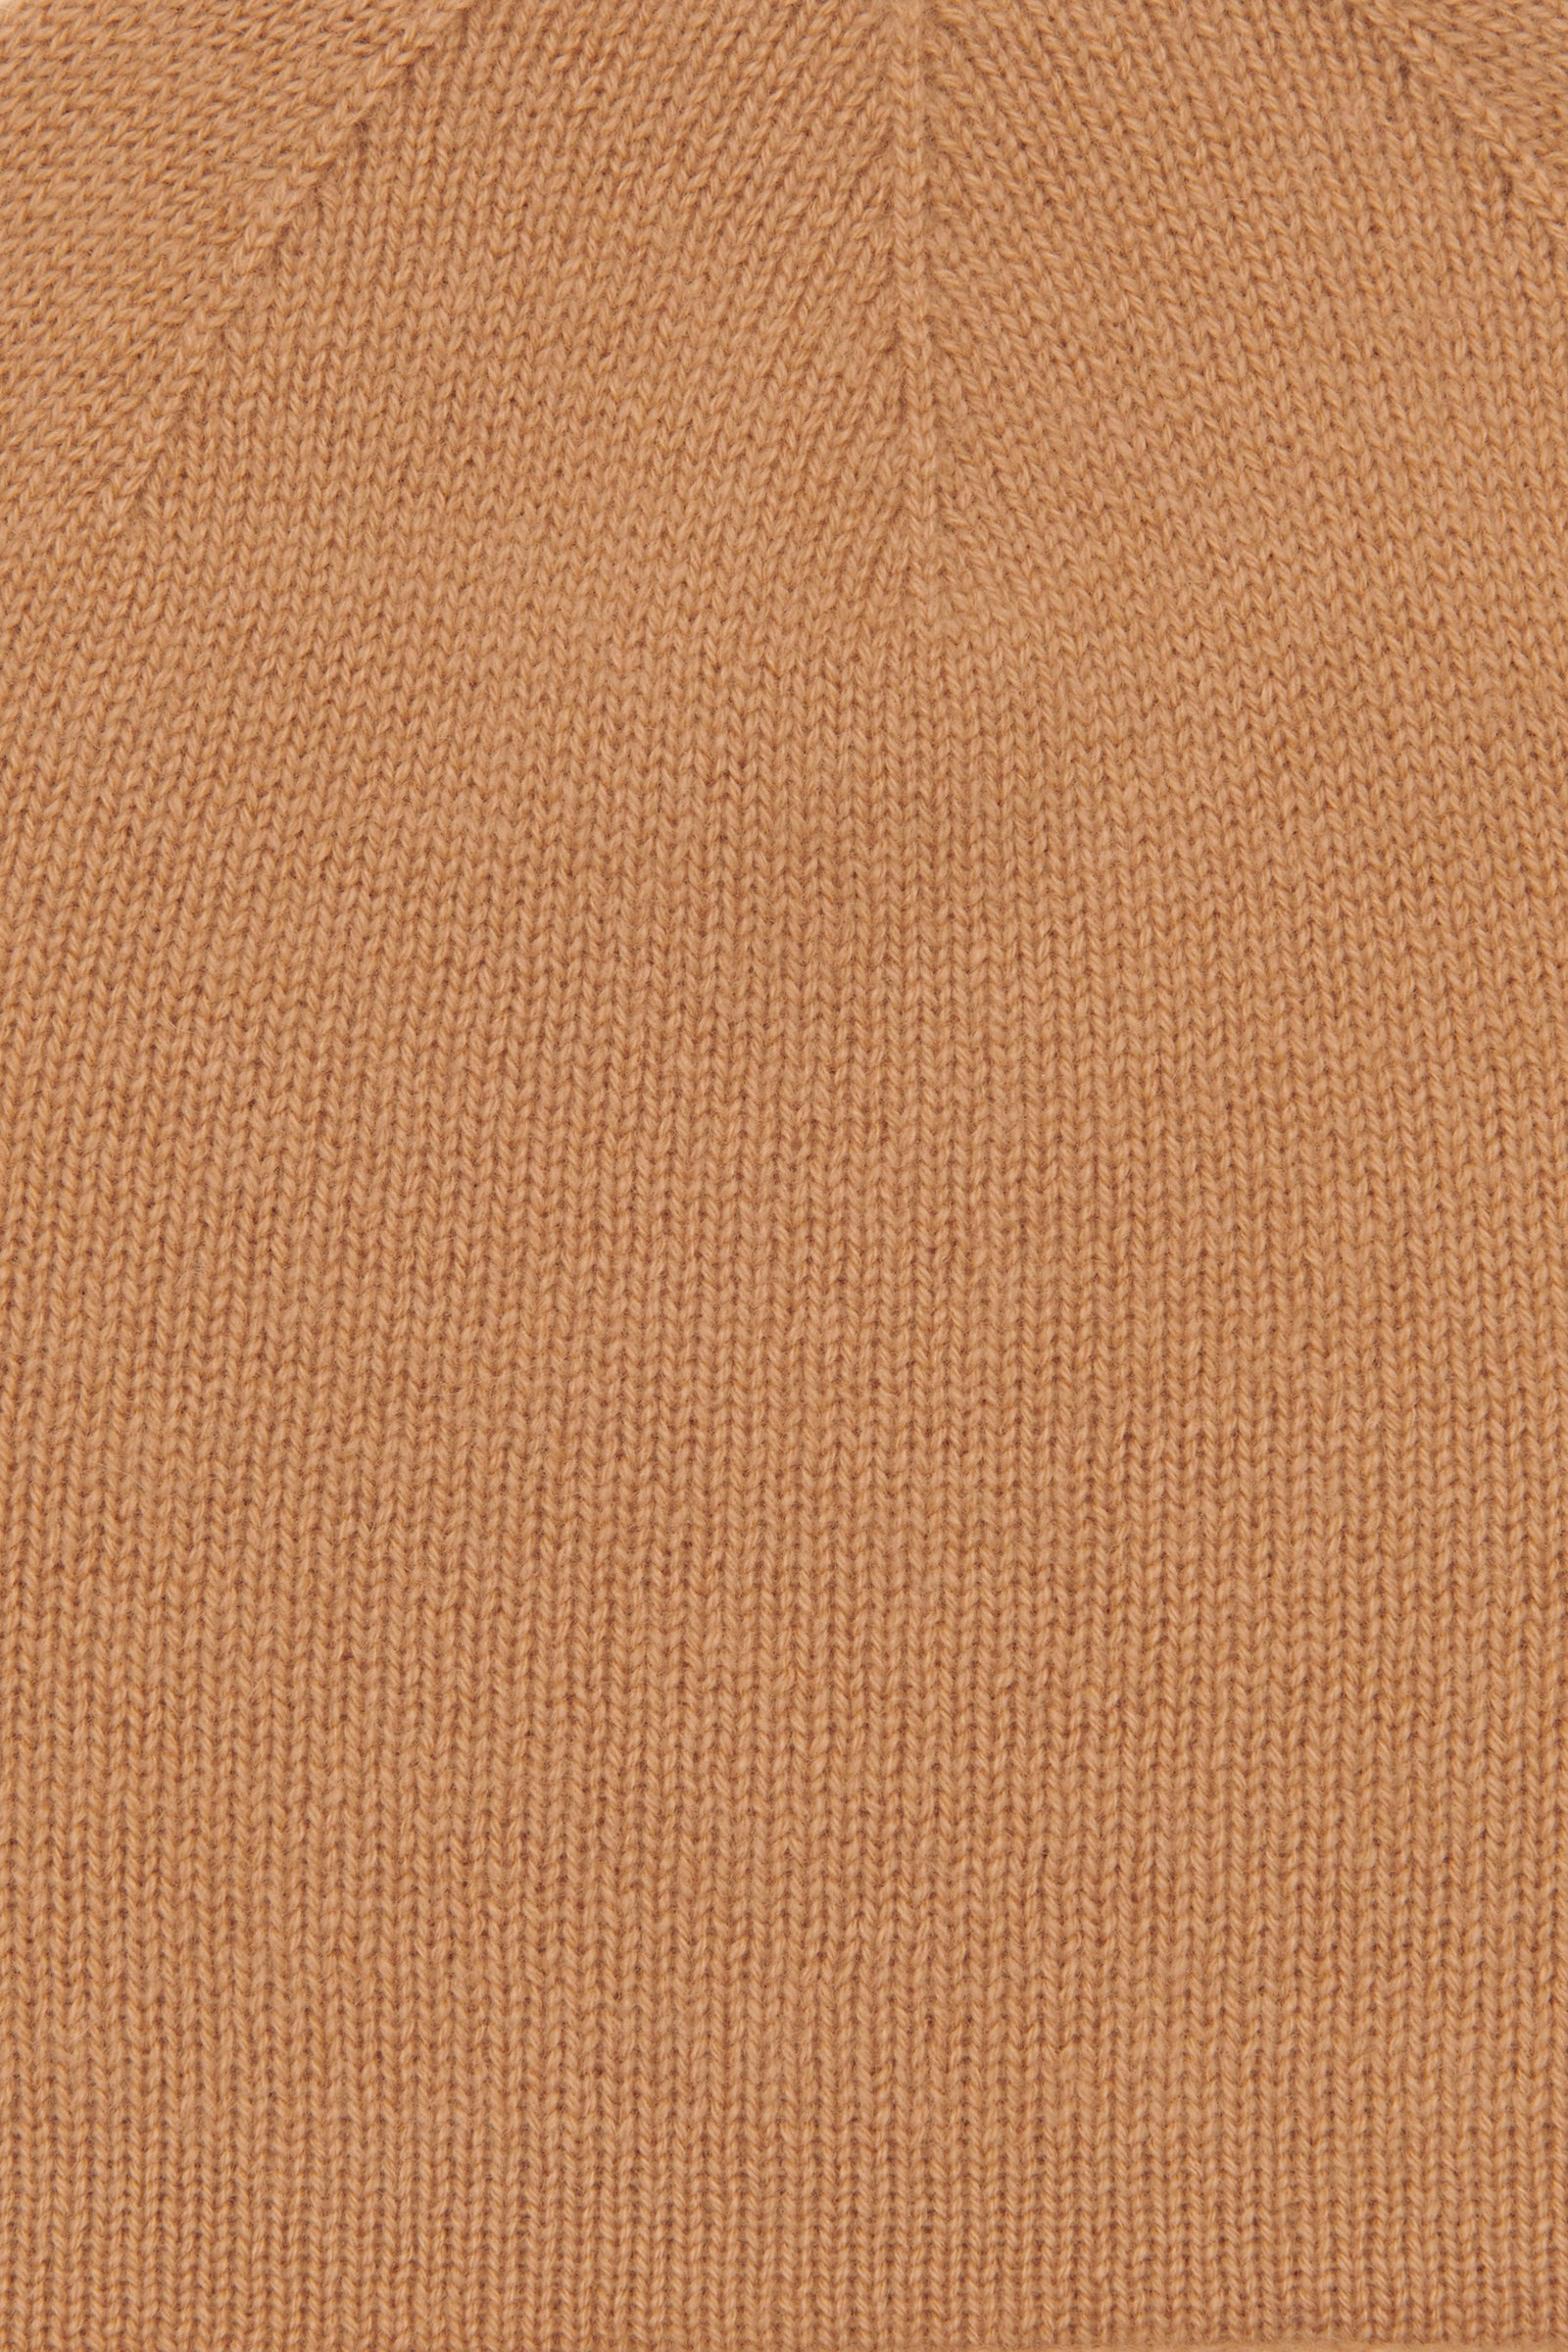 Kal Rieman Cashmere Swatch in Camel